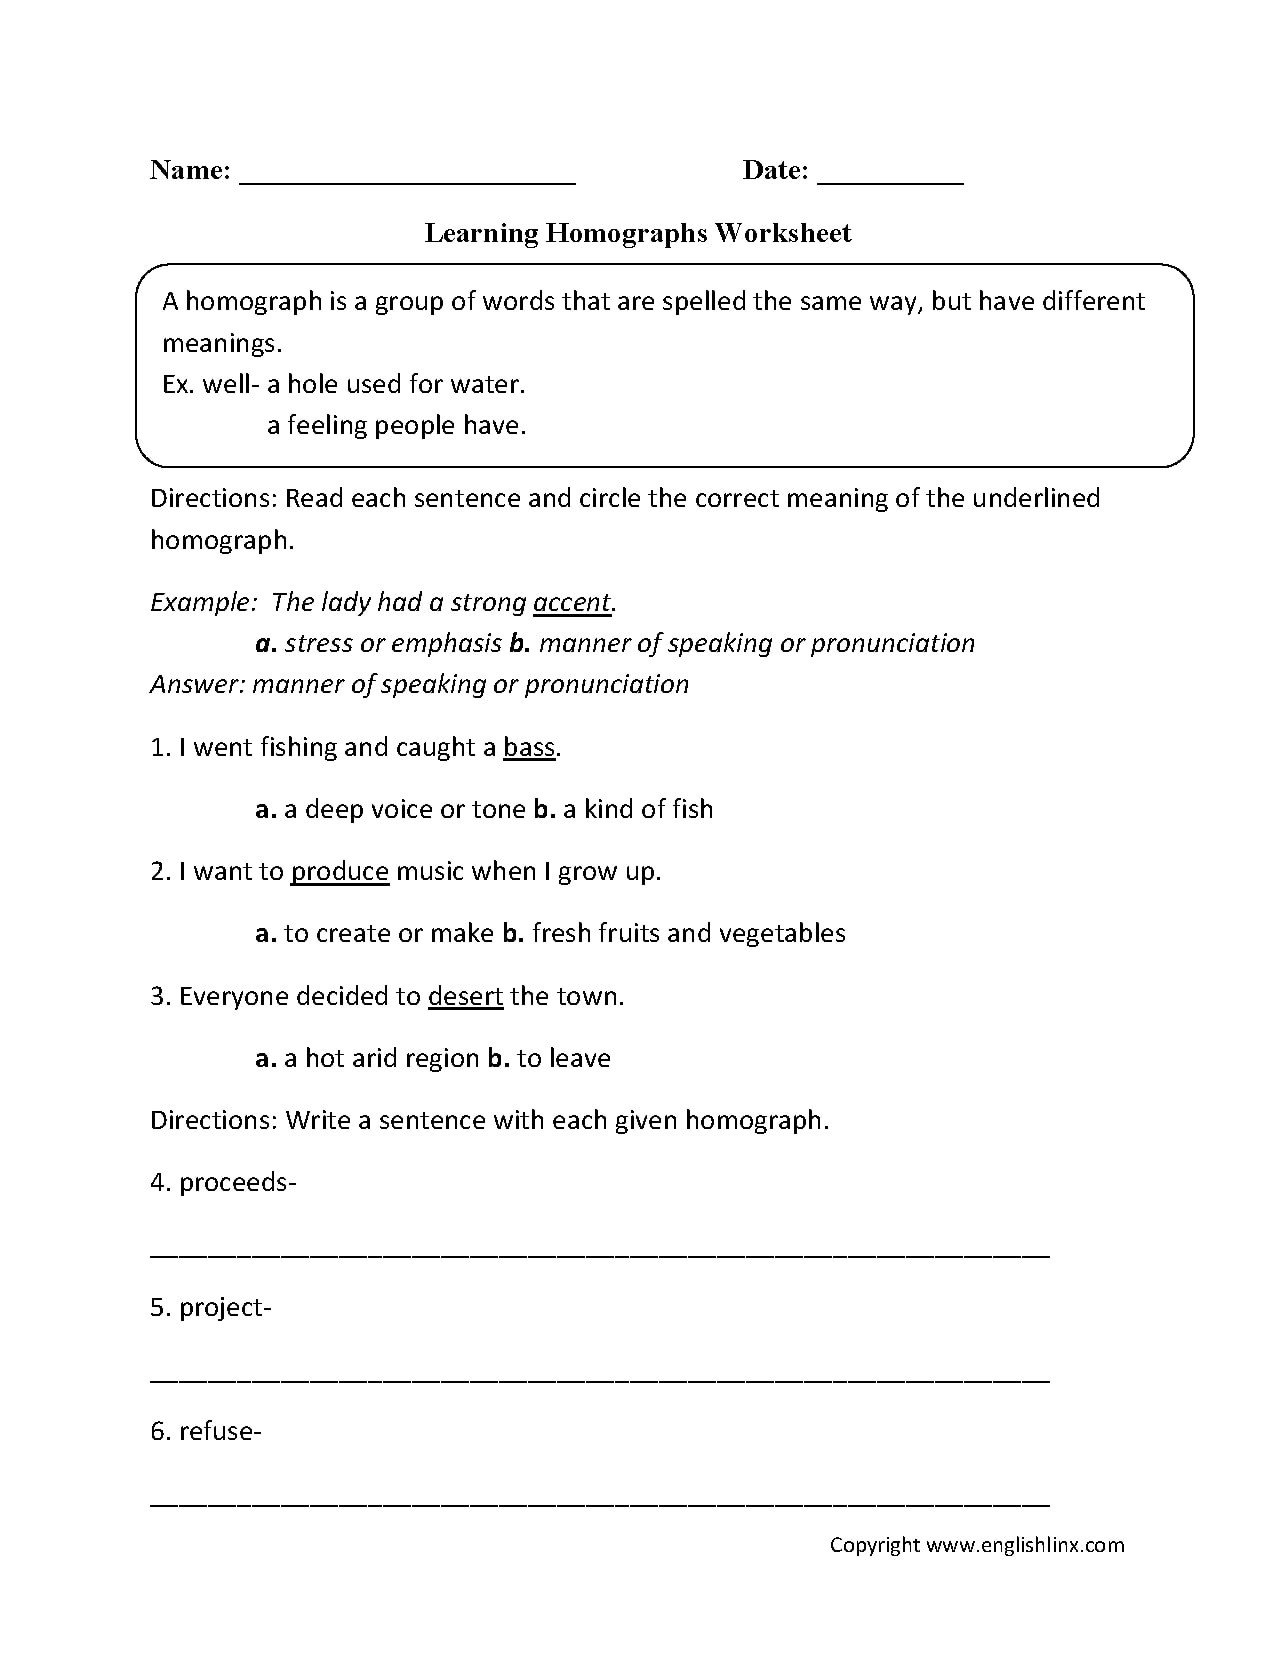 Homographs and Homophones Worksheets 8 Printable Homographs Examples Pdf